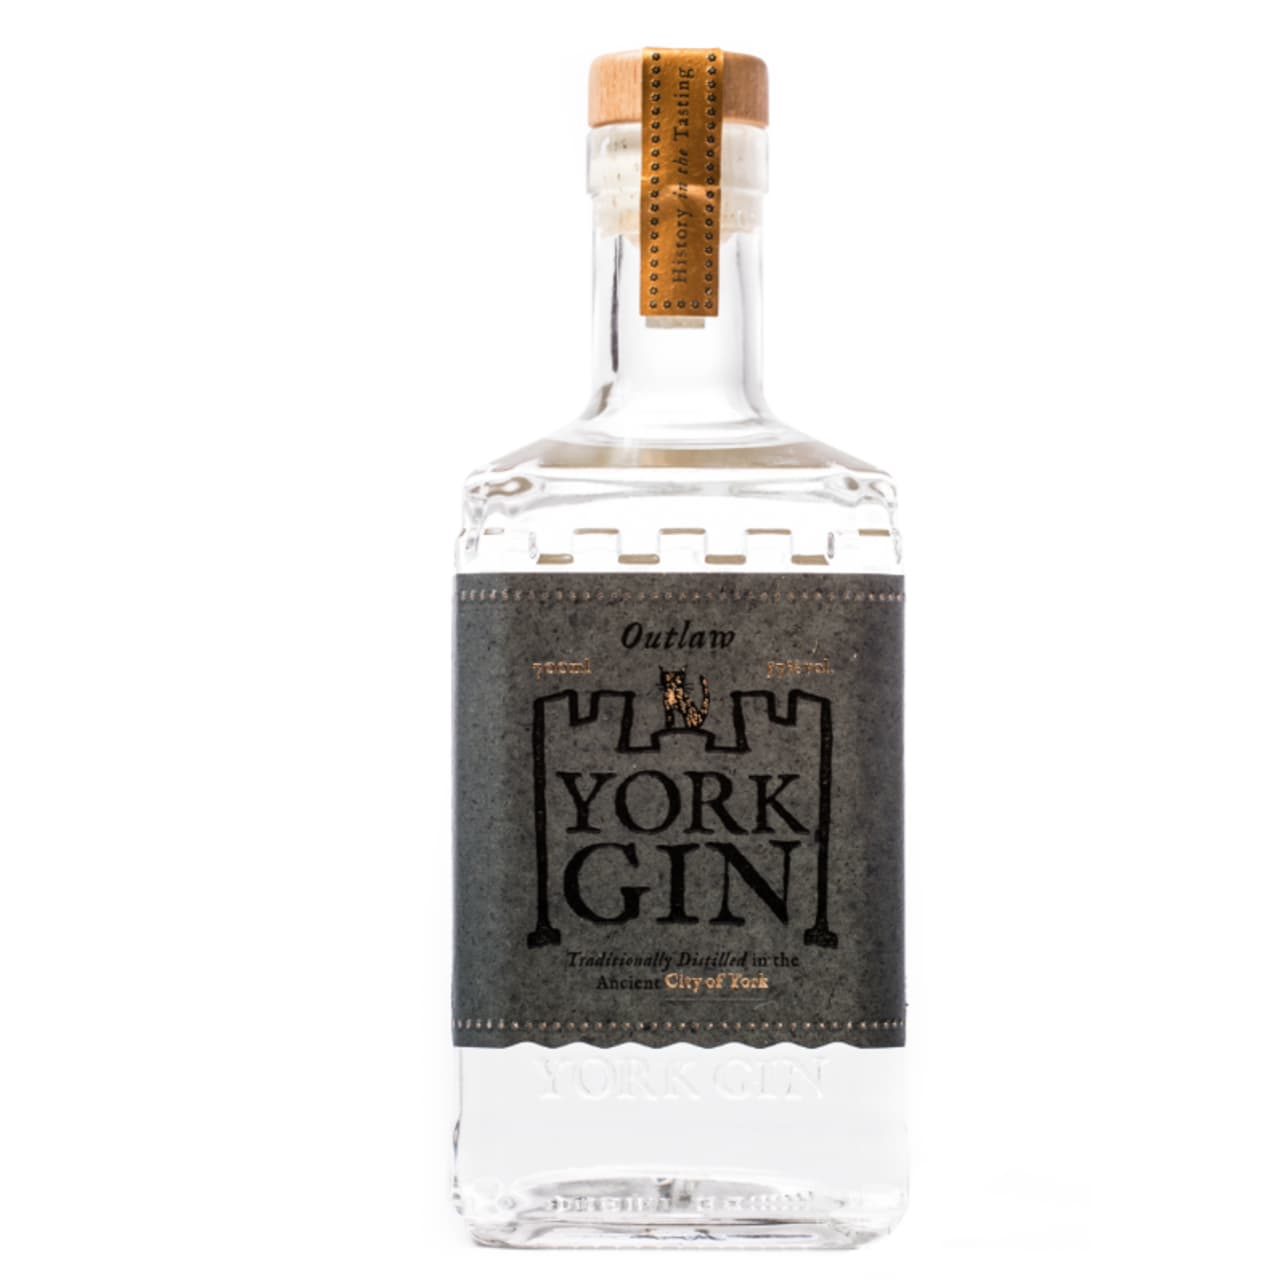 Product Image - York Gin Outlaw